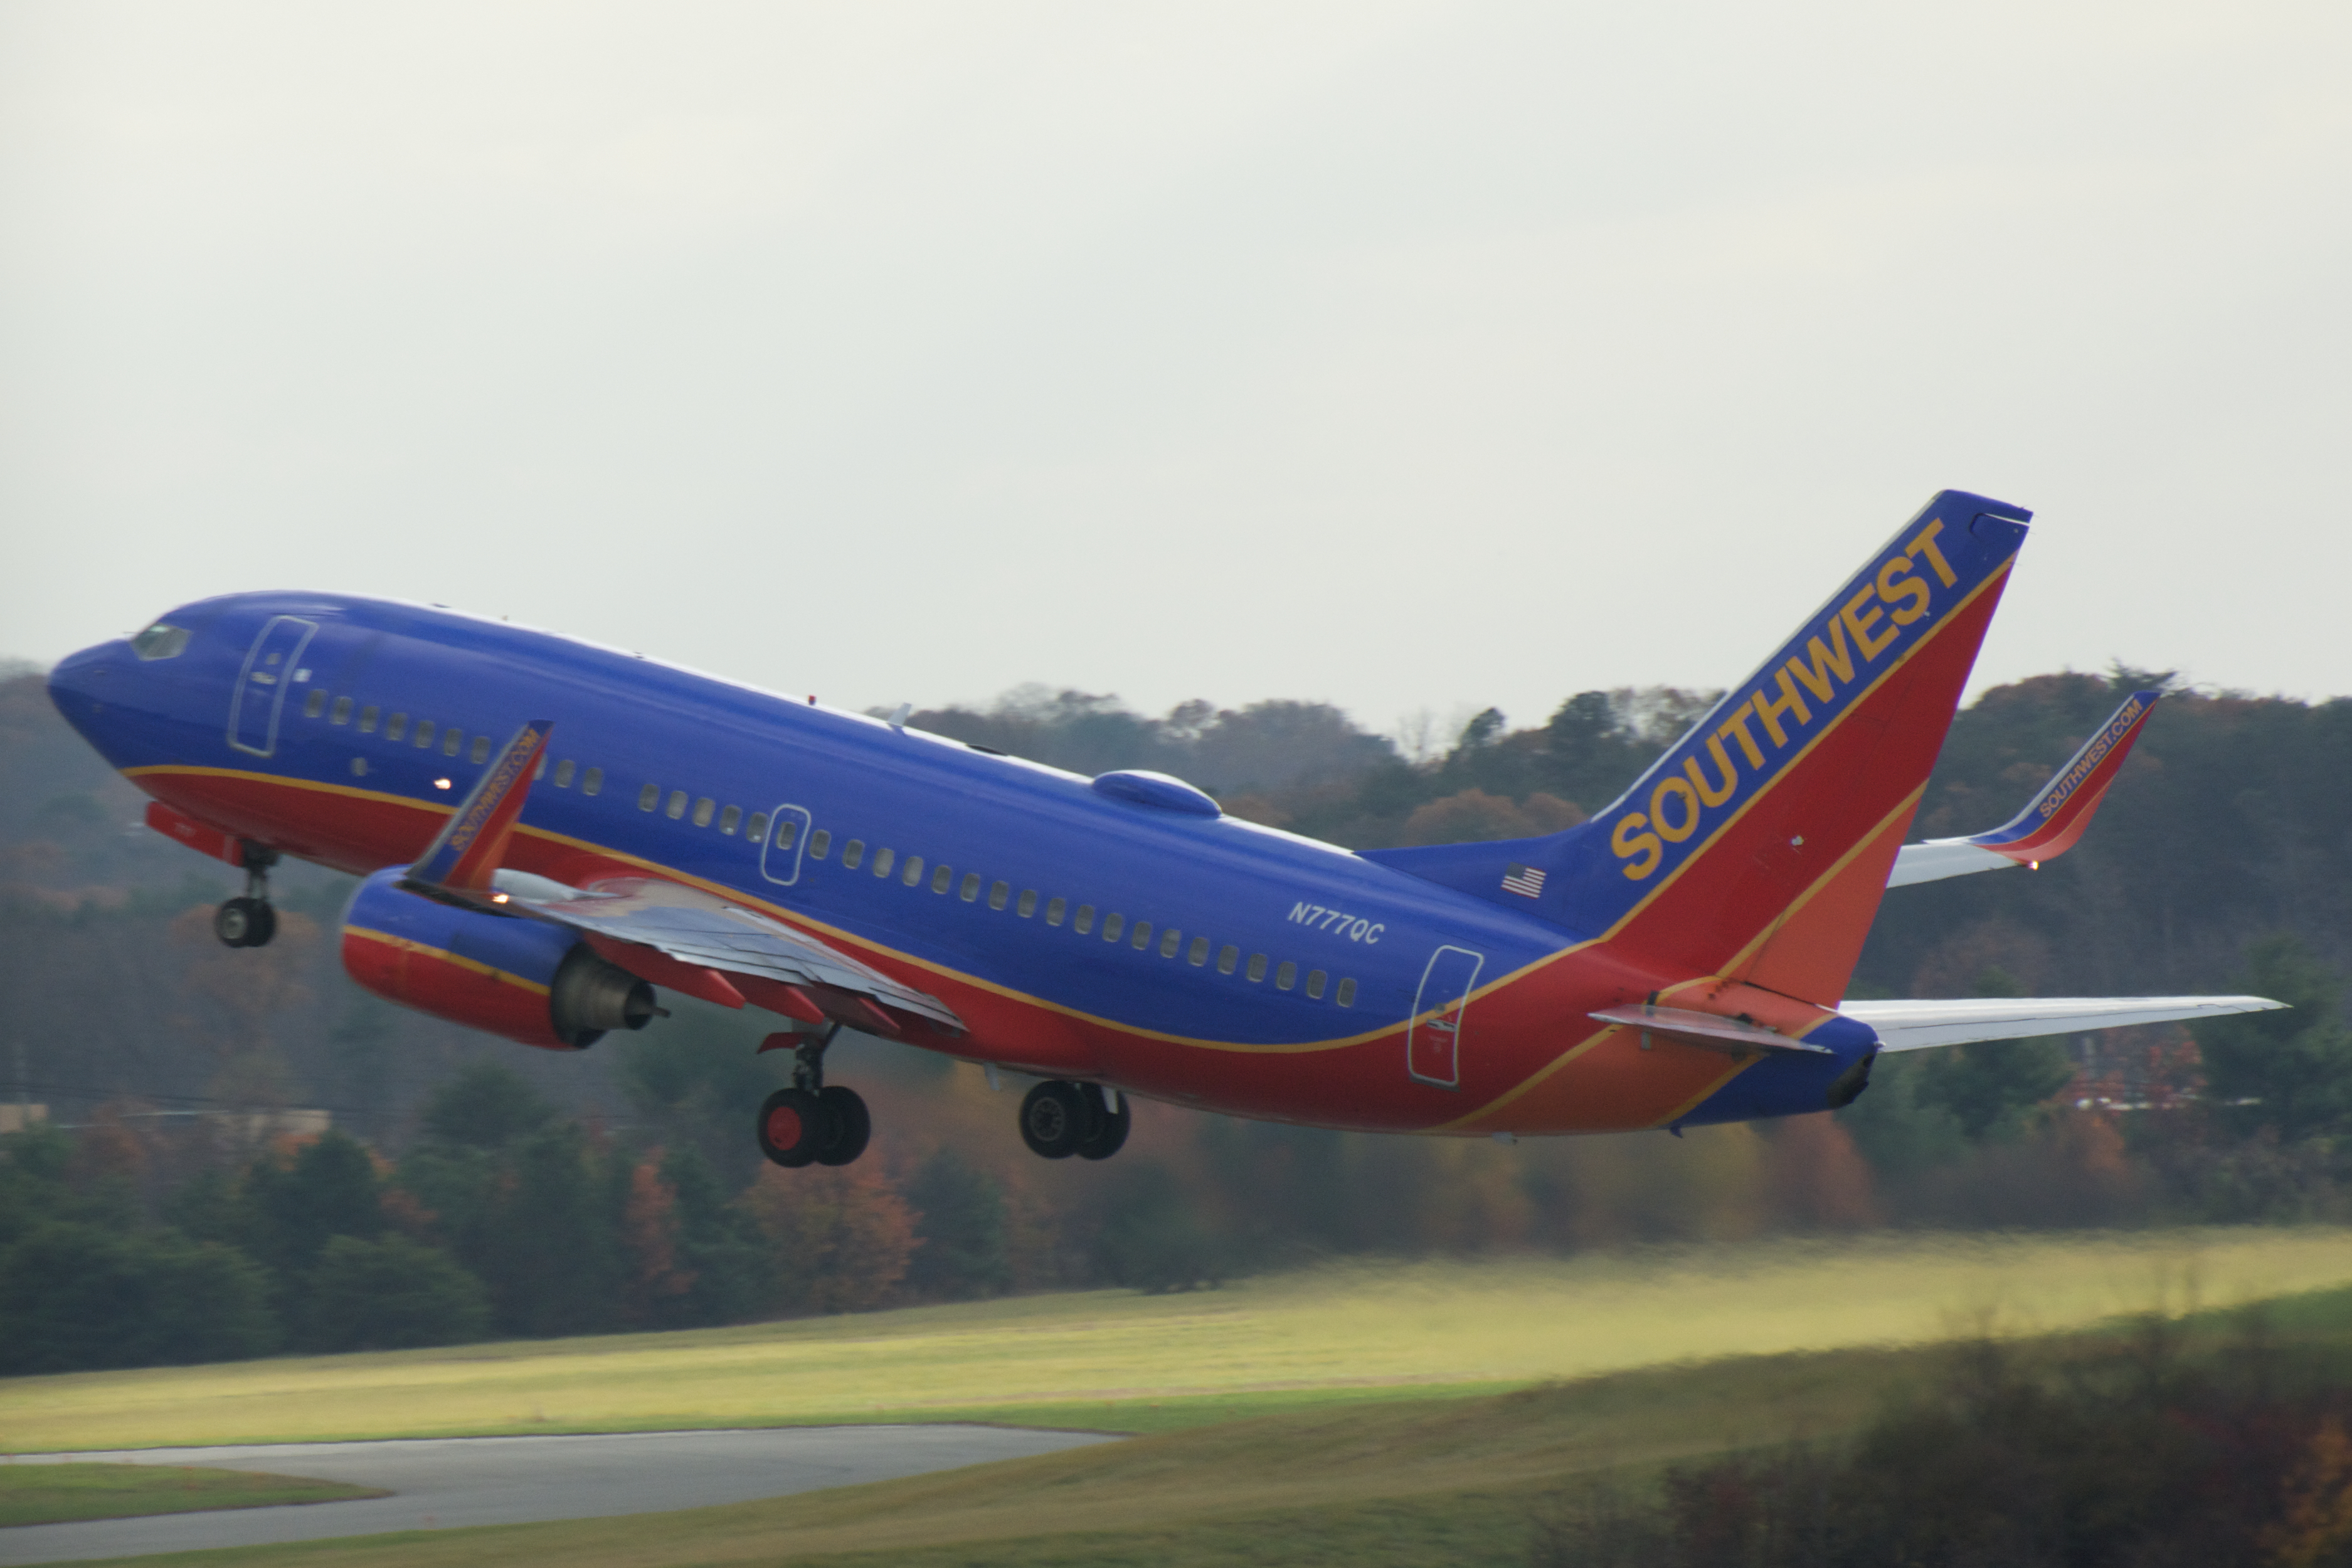 south wes air lines problems alternatives Technology issues in southwest airlines that started sunday morning are continuing according to official statement, these are affecting in-airport customer service tech systems across its online platforms.